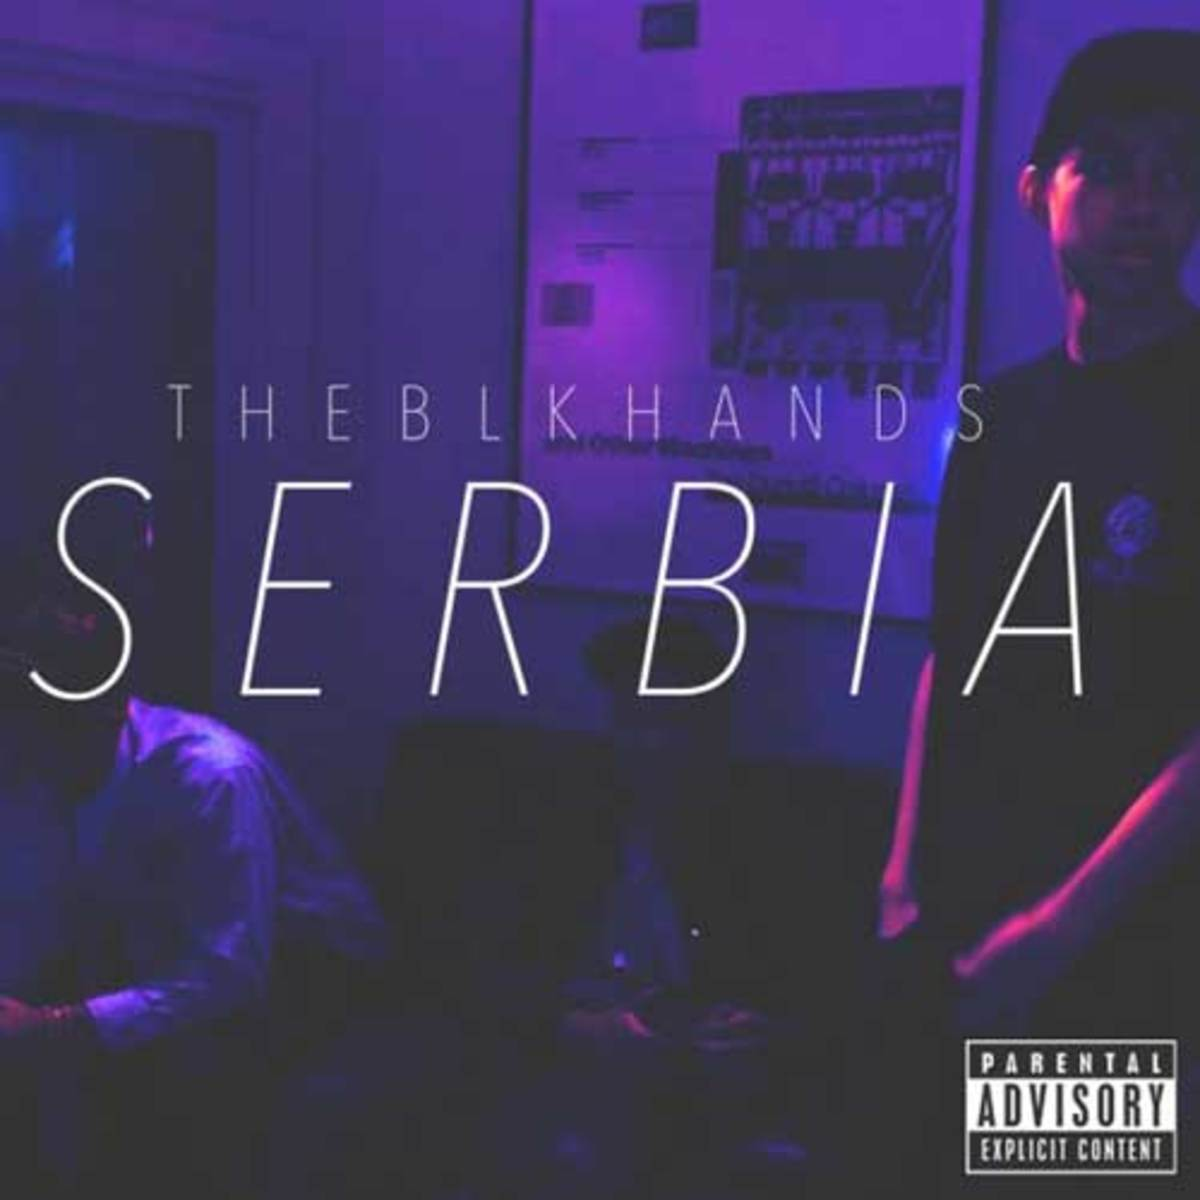 theblkhands-serbia.jpg